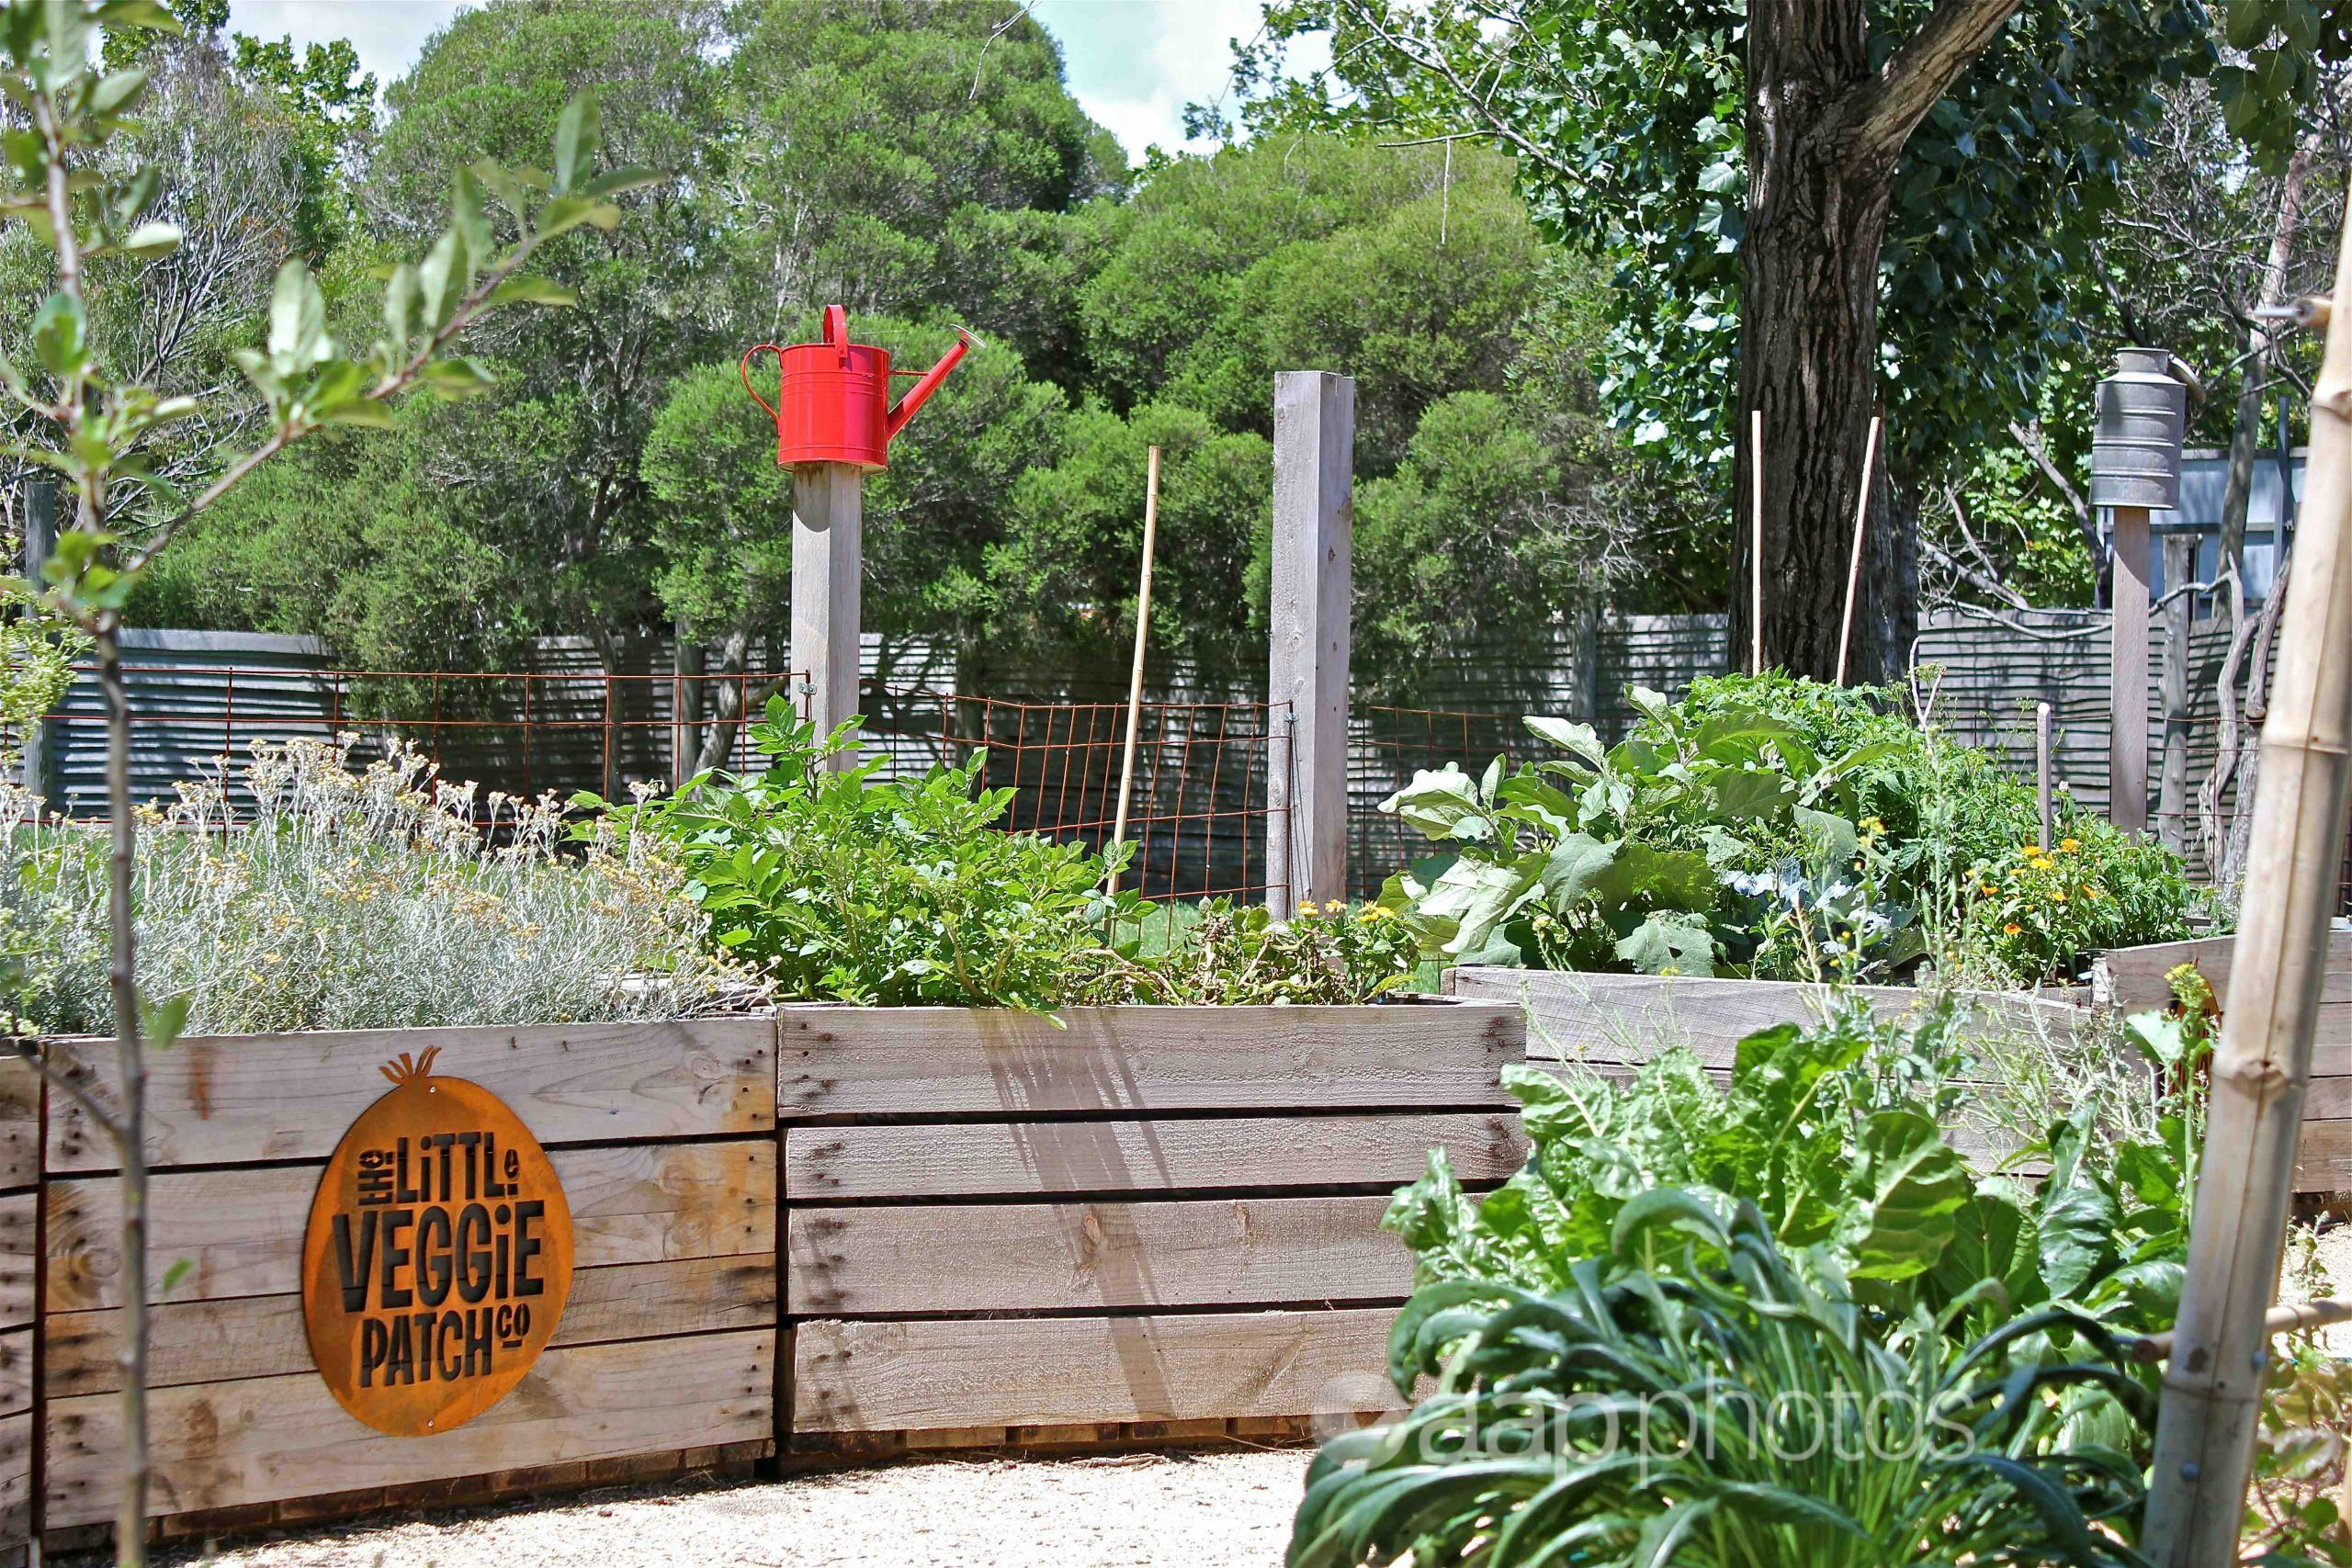 A vegetable garden in the Melbourne suburb of Collingwood.